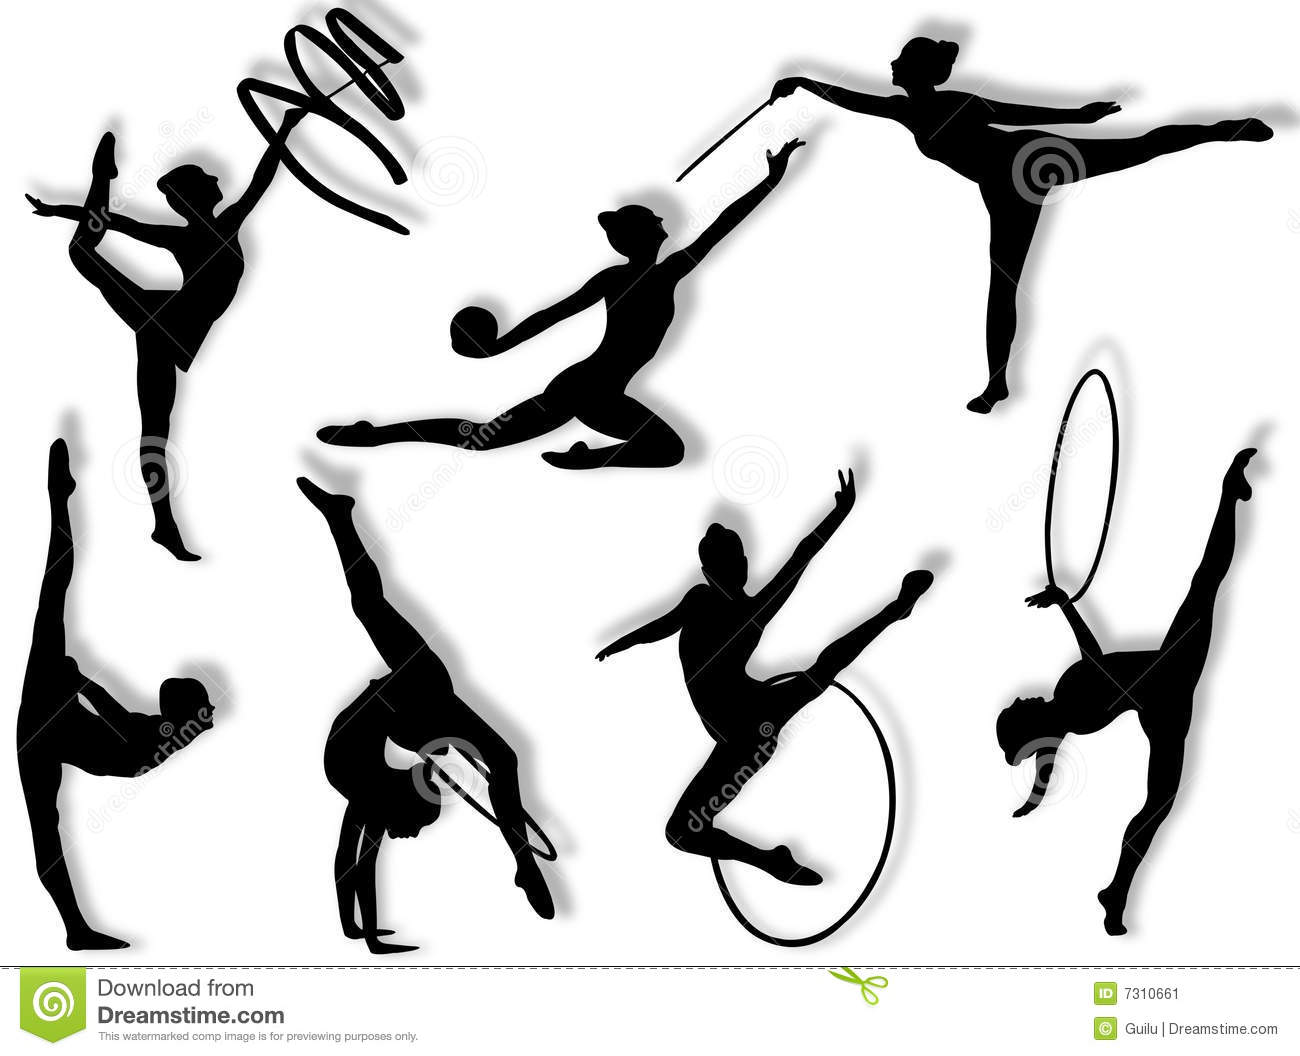 Young women in rhythmic gymnastics silhouette and exercises.